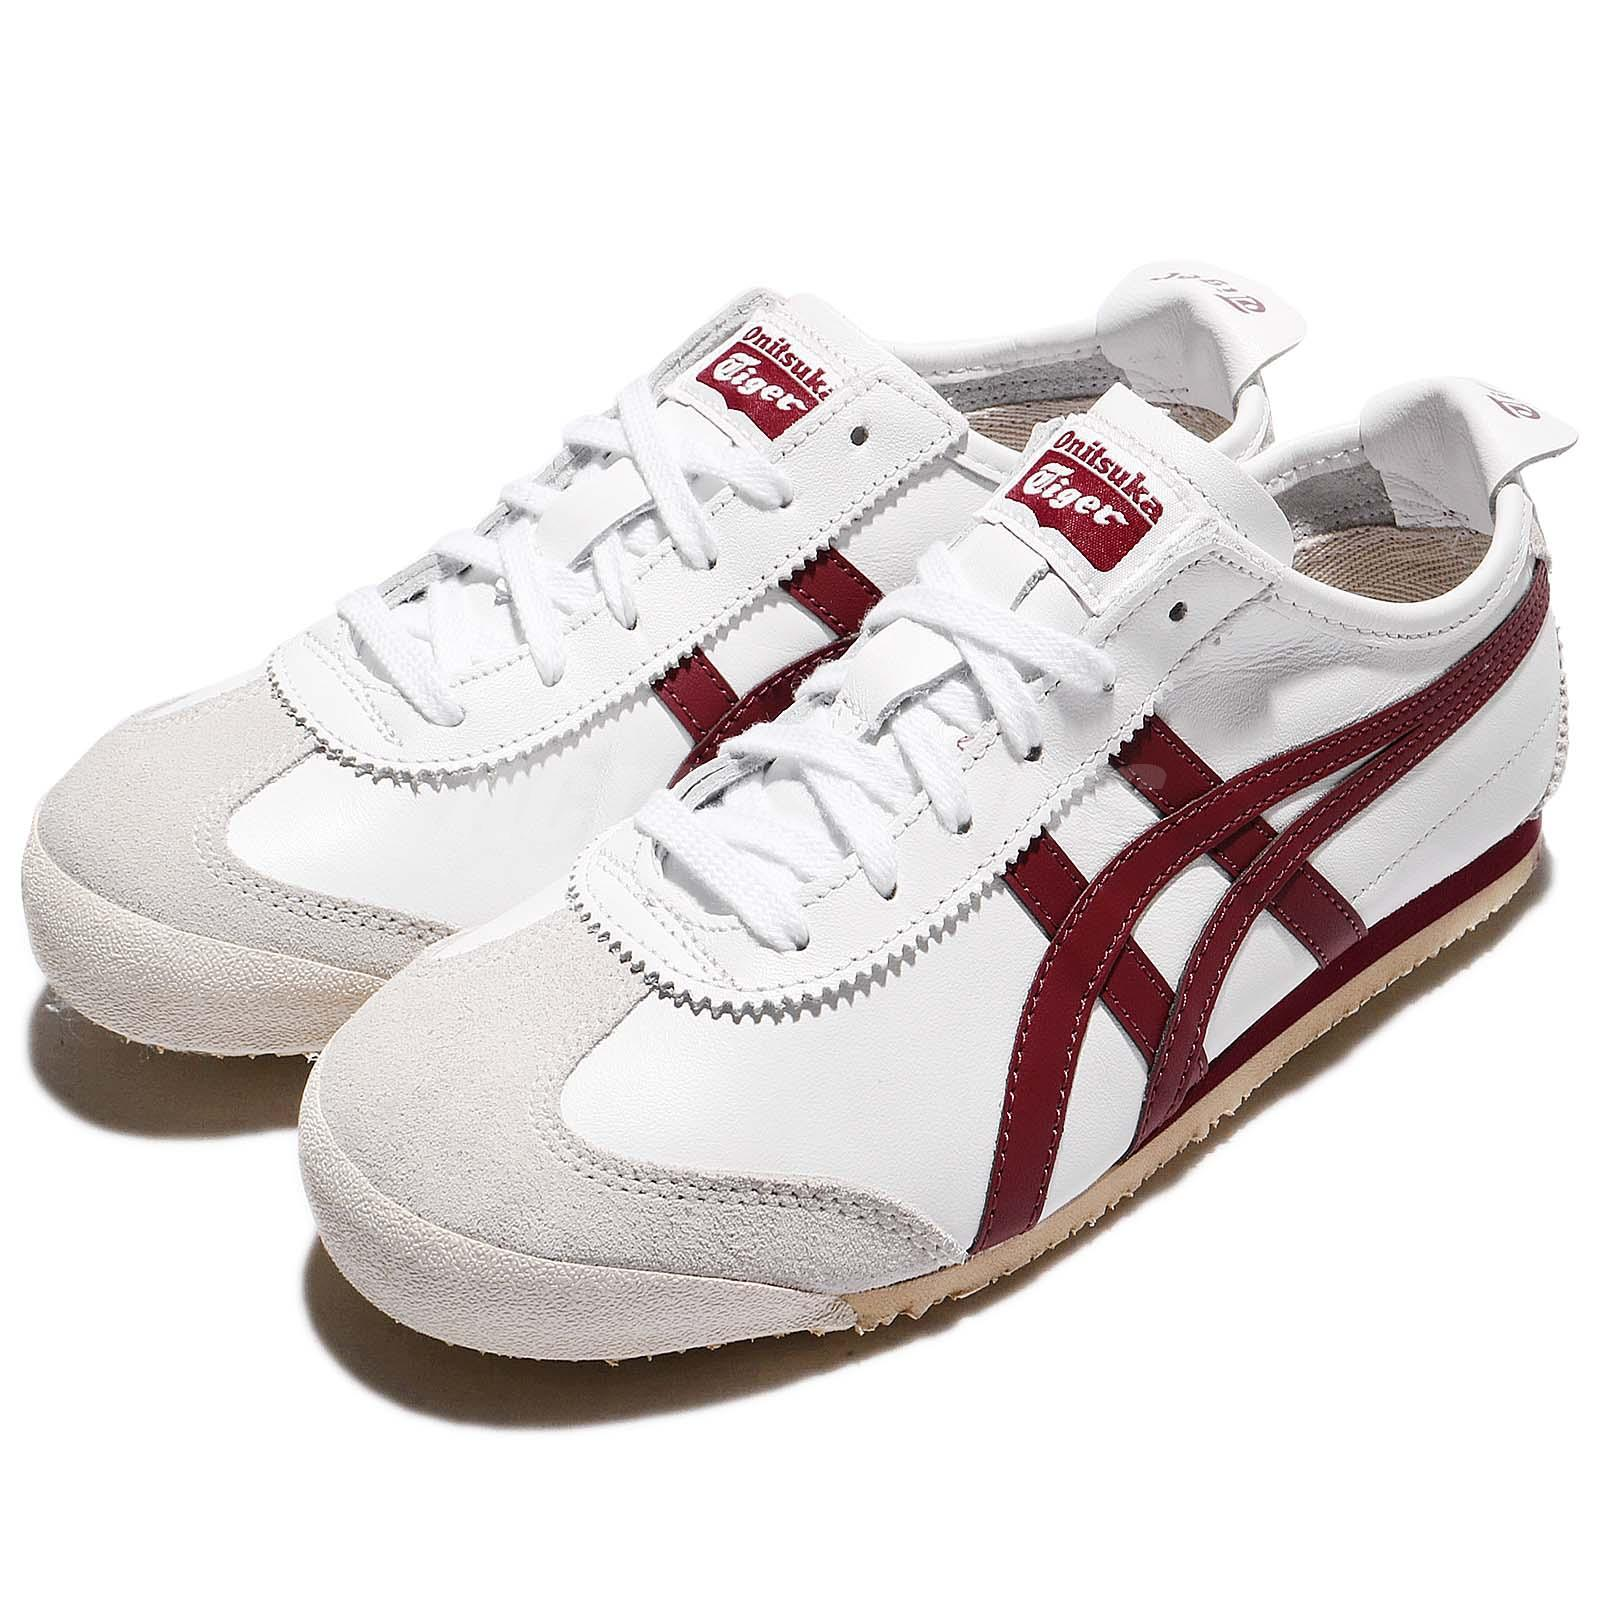 sale retailer 84659 afcb7 Details about Asics Onitsuka Tiger Mexico 66 White Burgundy Men Sports Shoe  Sneaker D4J2L-0125